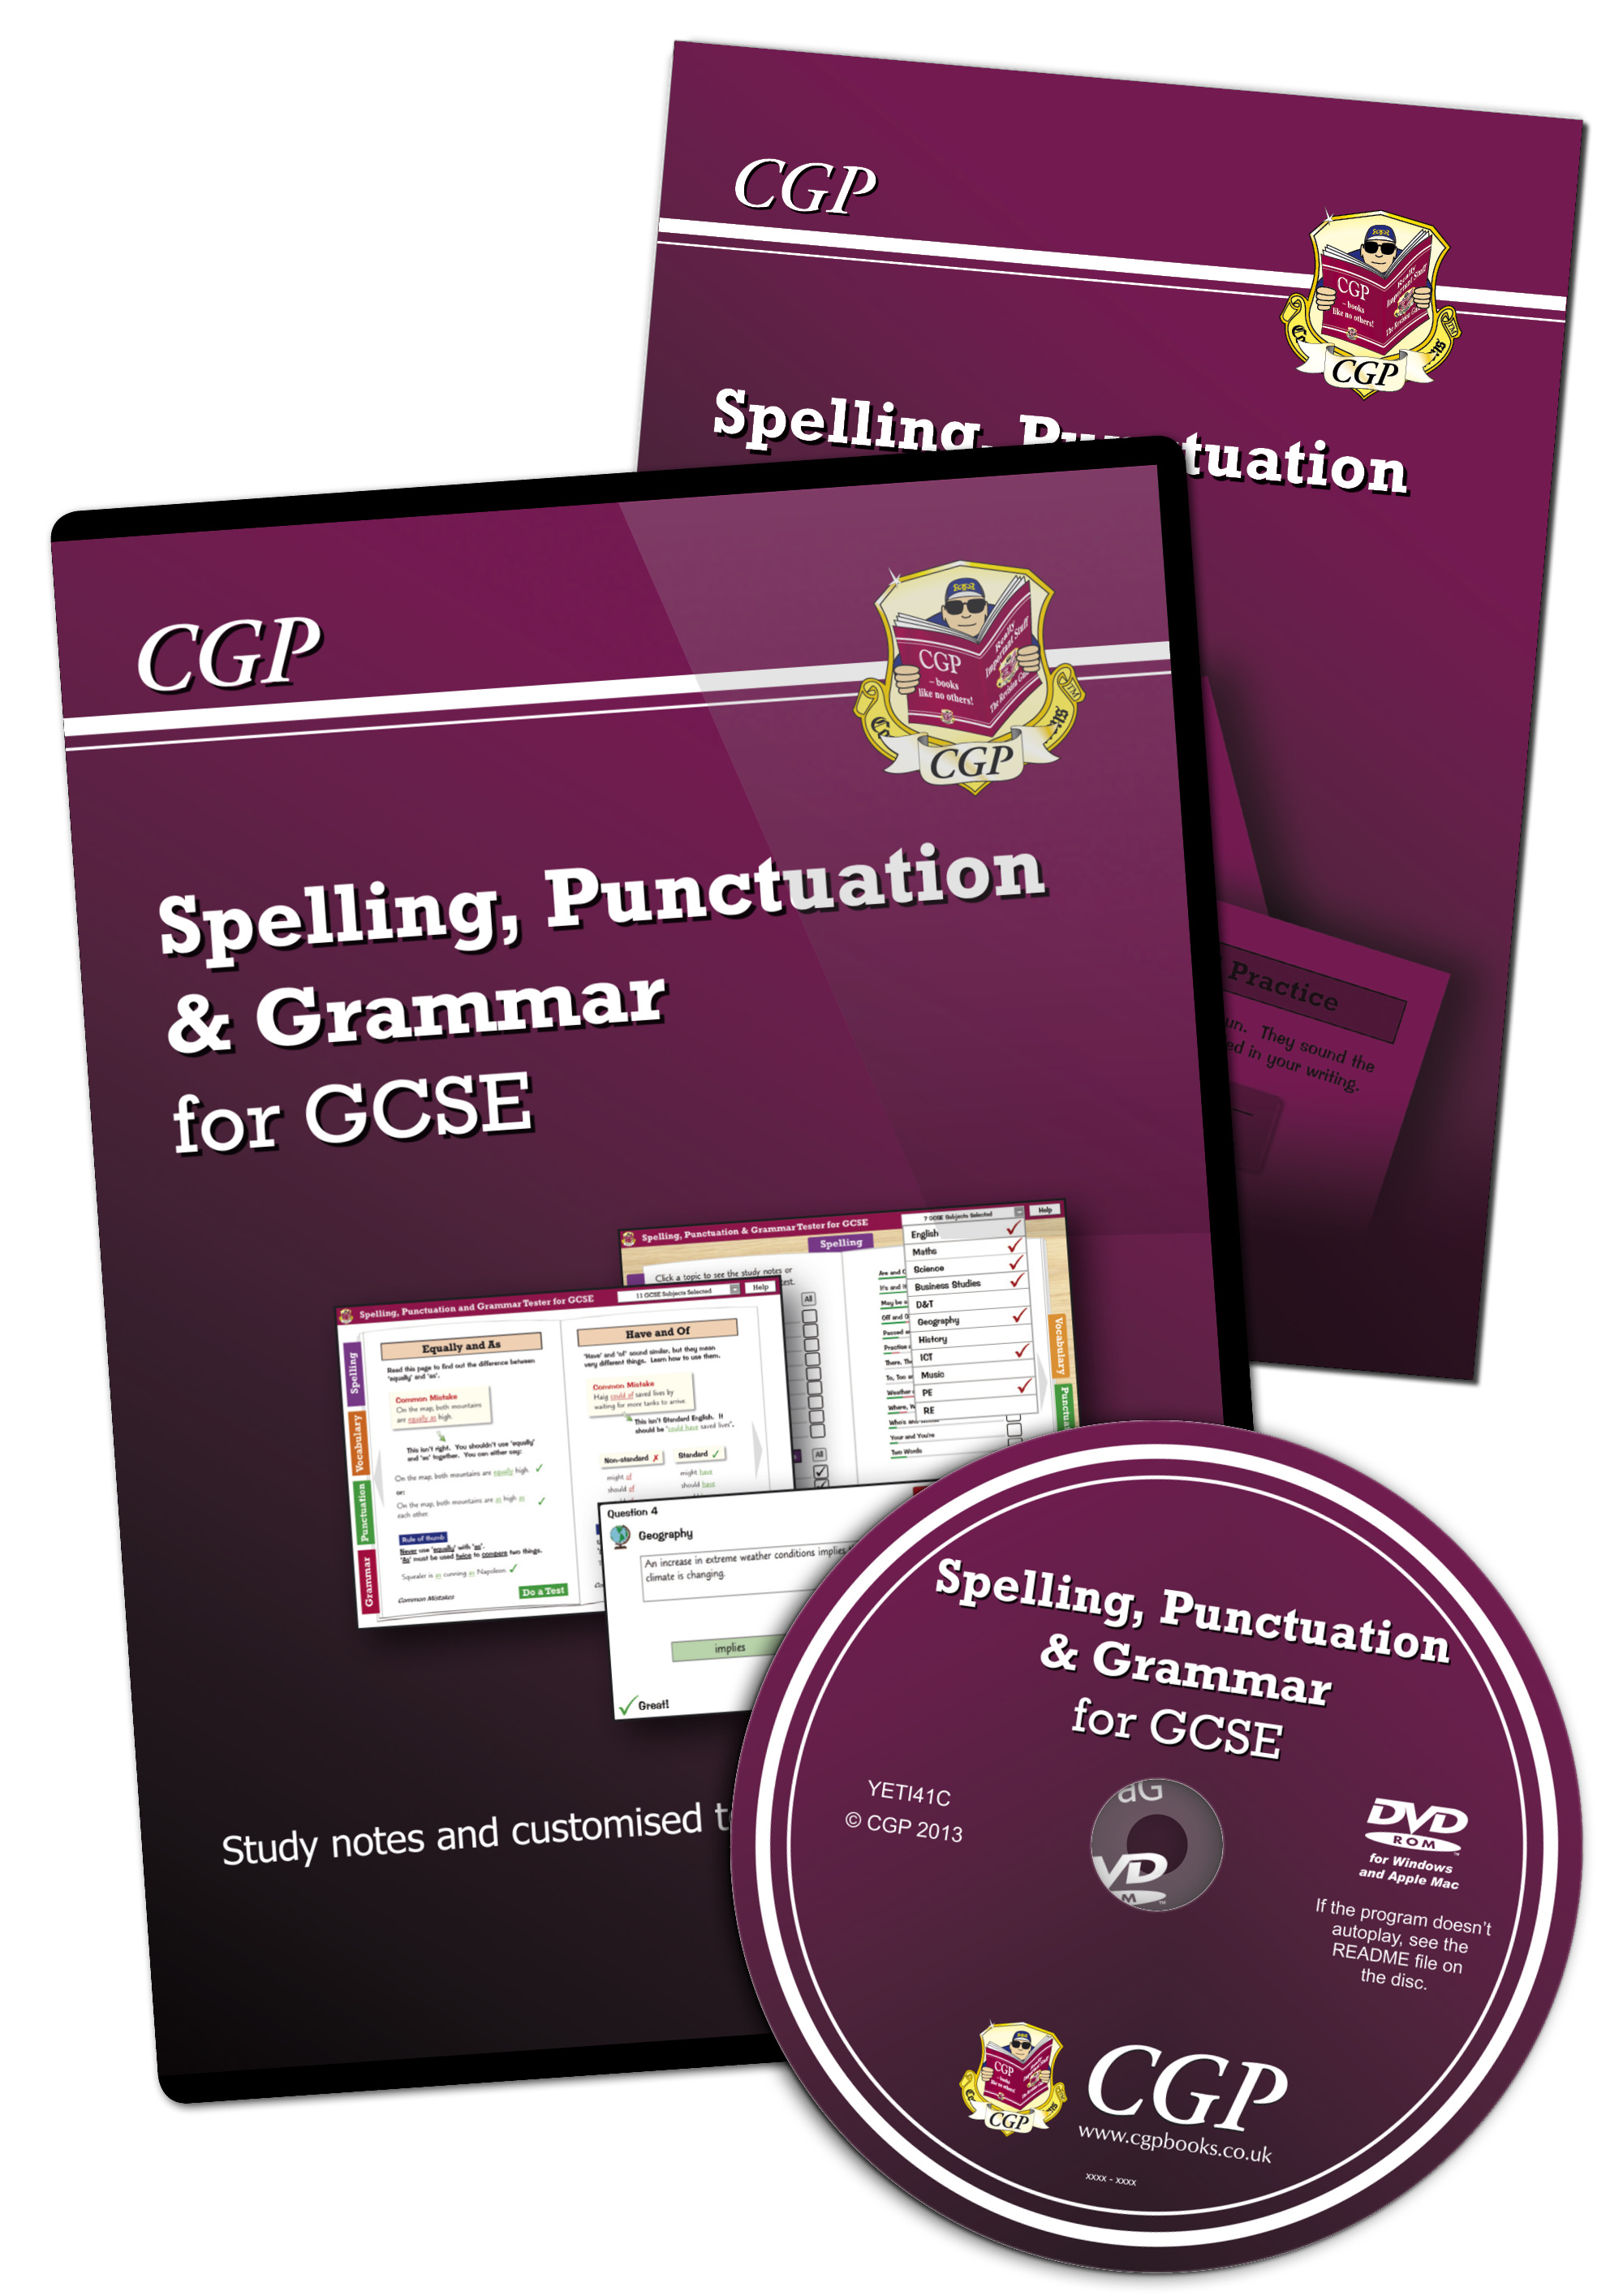 YETI41 - Spelling, Punctuation & Grammar for GCSE - Digital Tester and Handbook